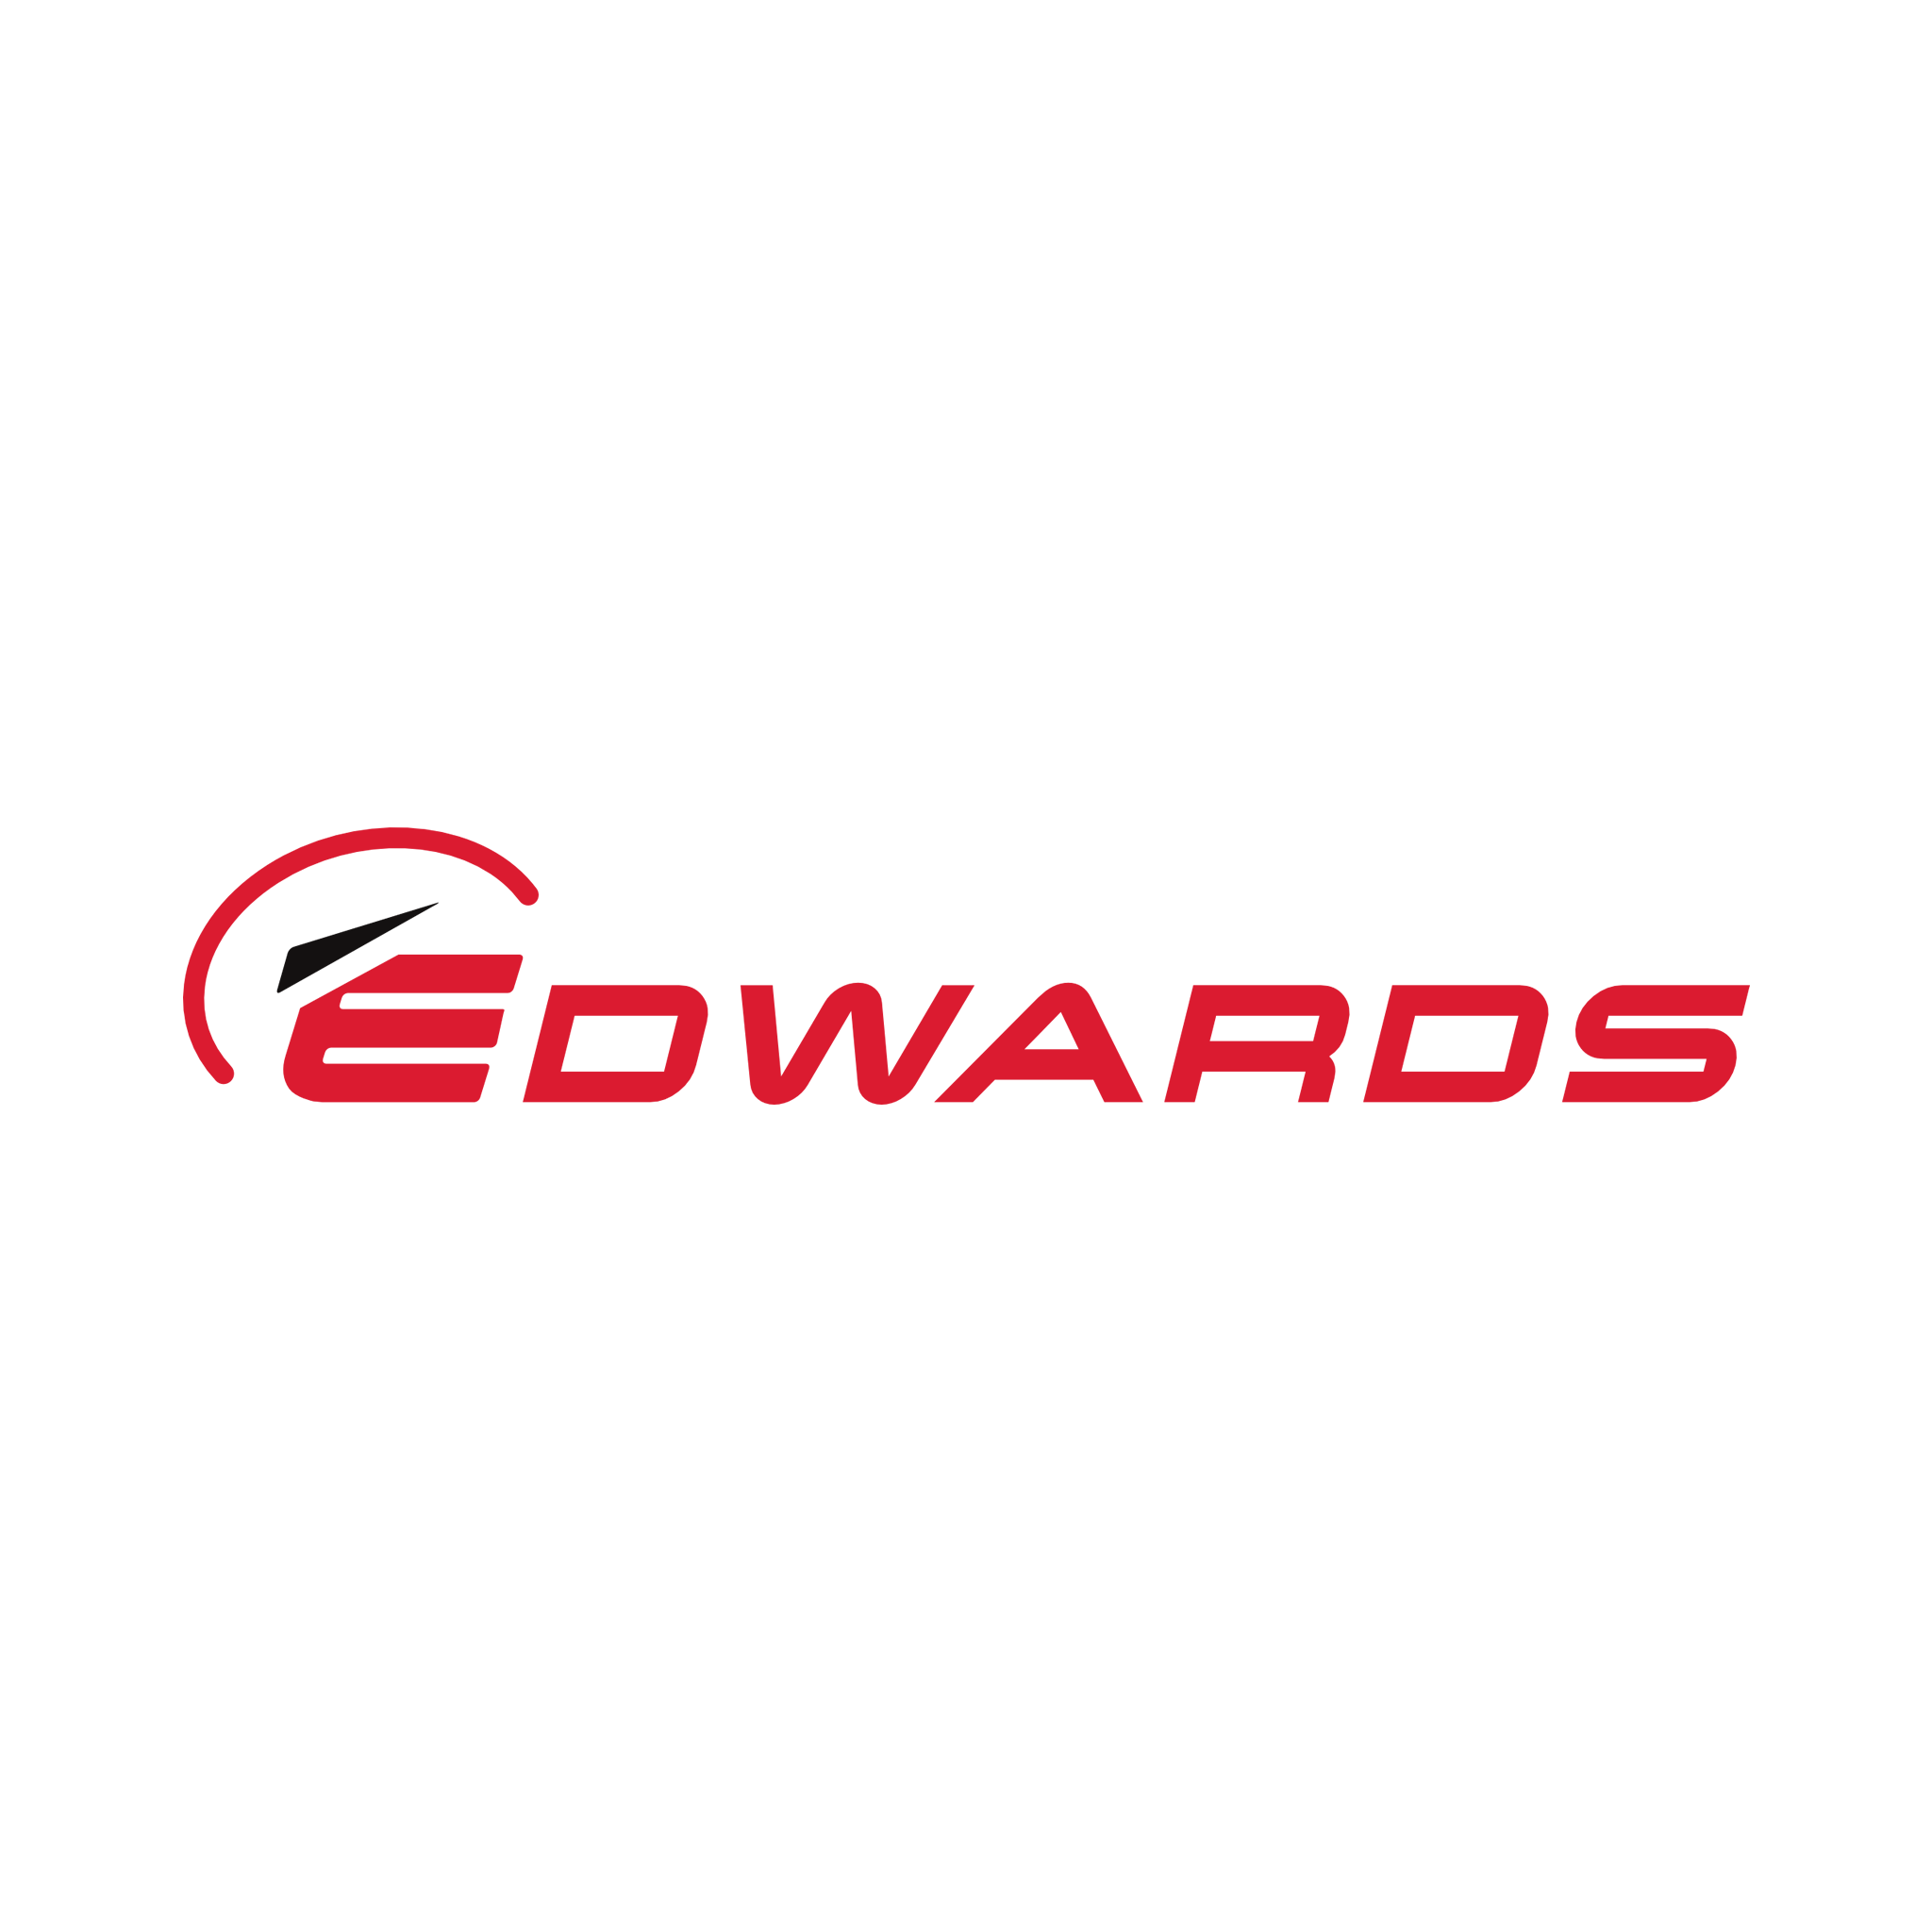 Discover Apprenticeship Employer Edwards